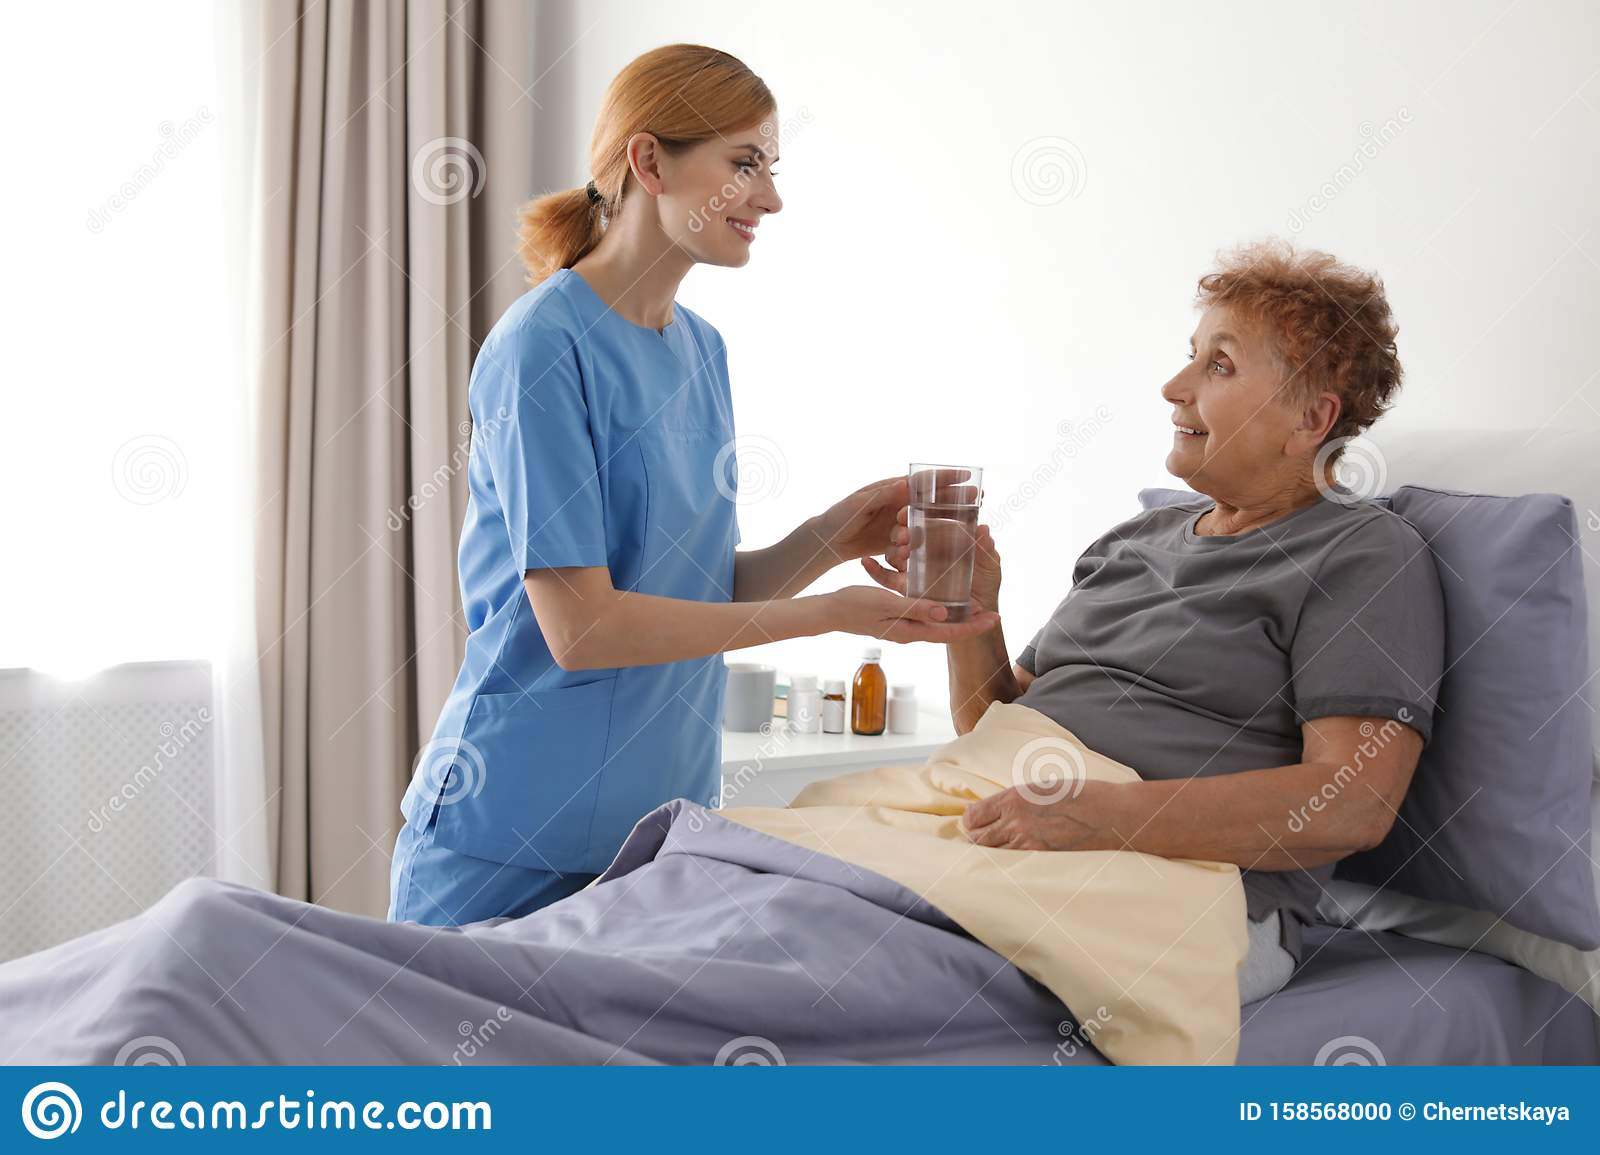 Nurse giving glass of water to elderly woman. Medical assistance